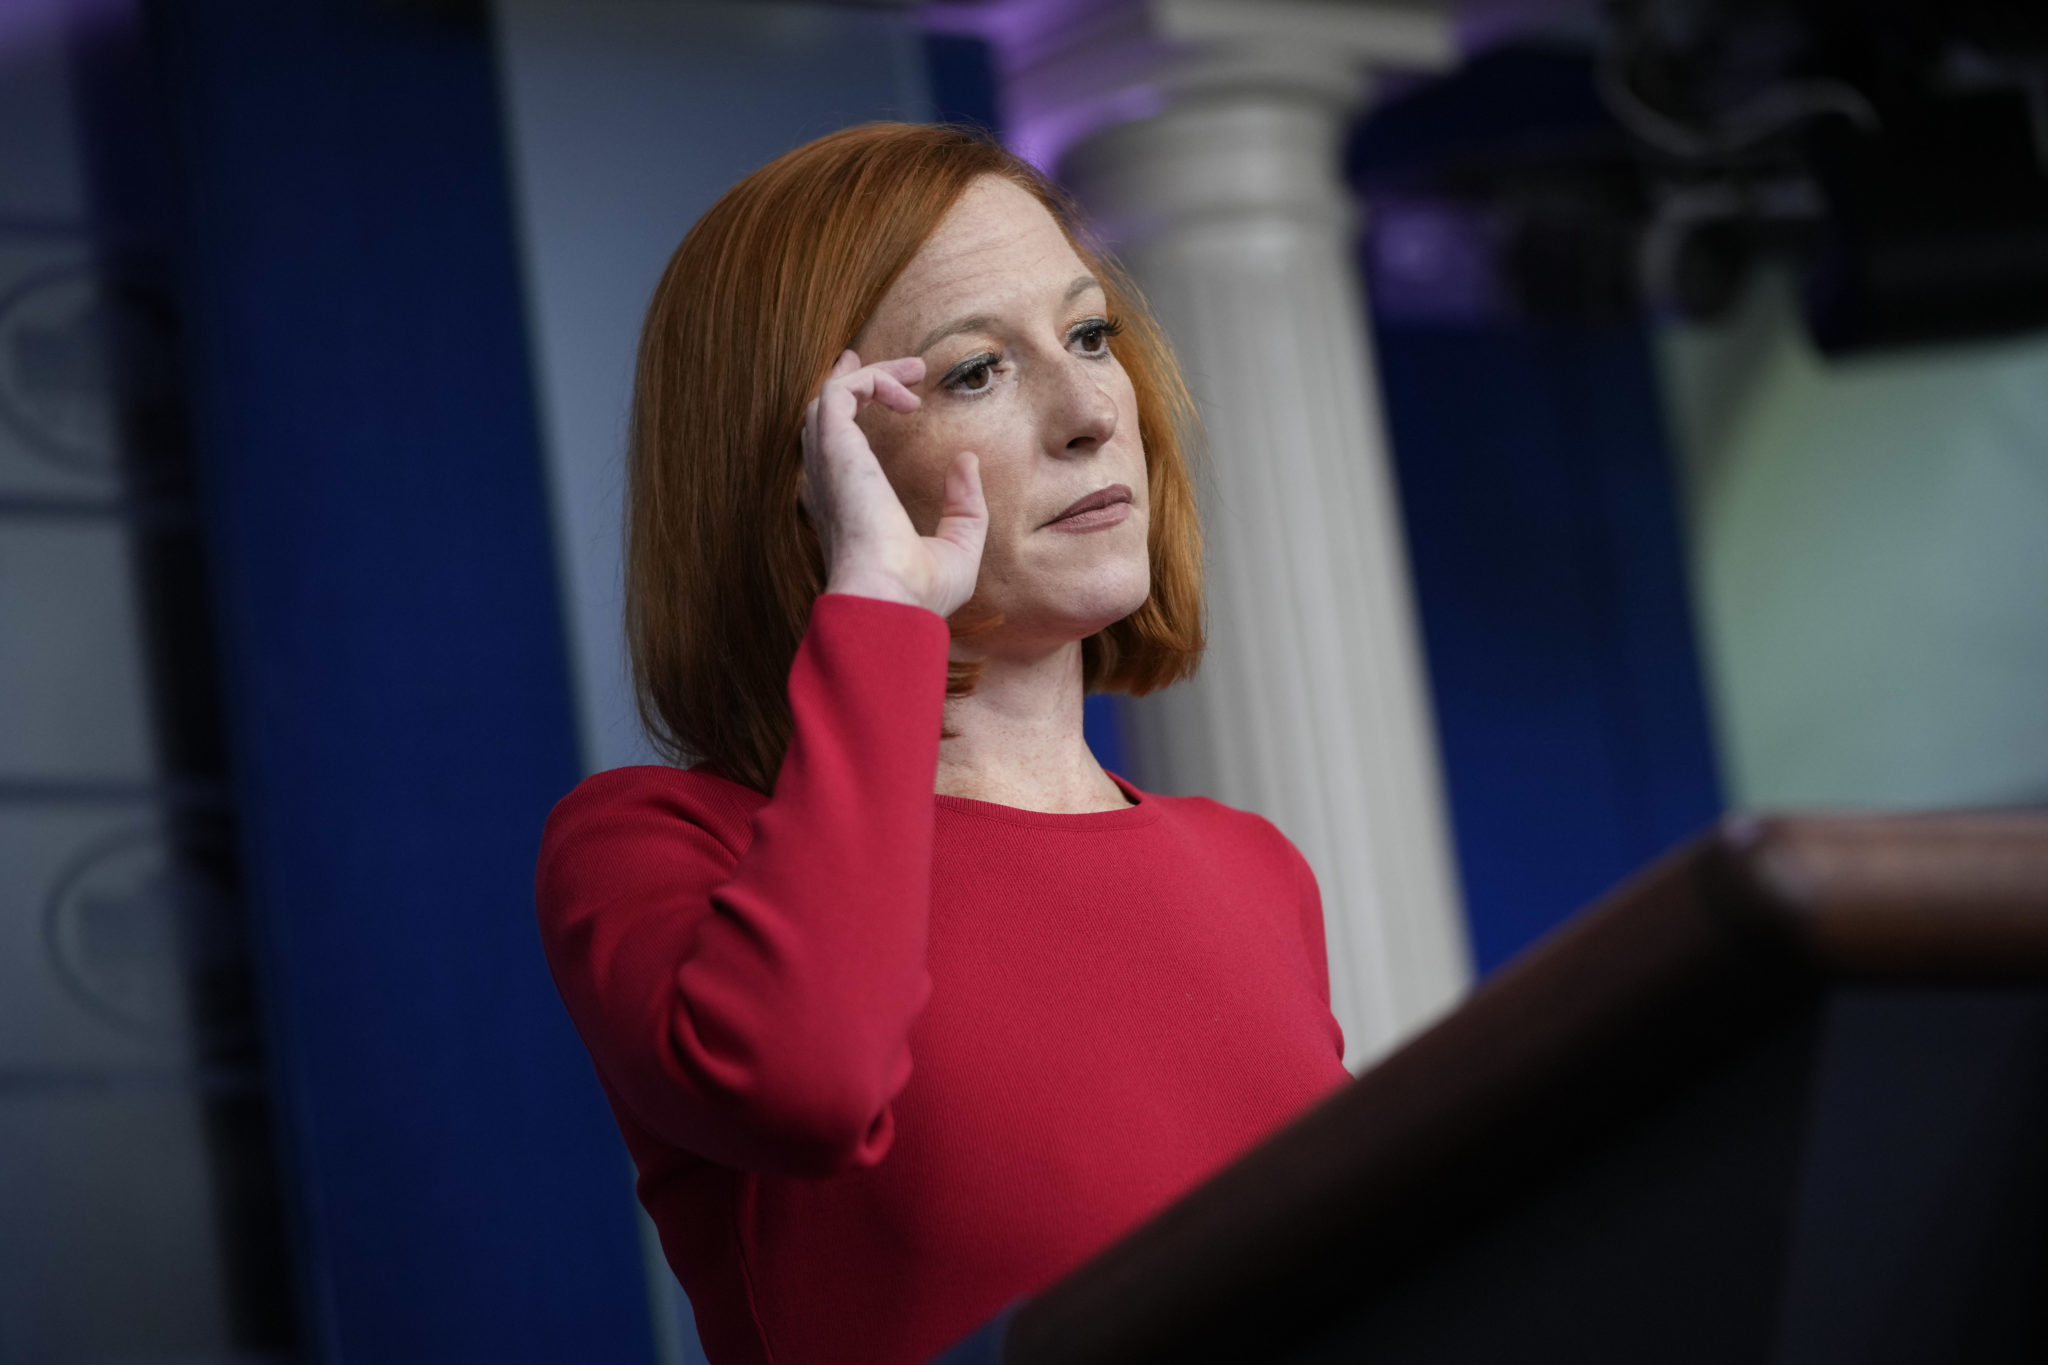 Double Shot of Psaki To Go With Biden's Nothing Burger